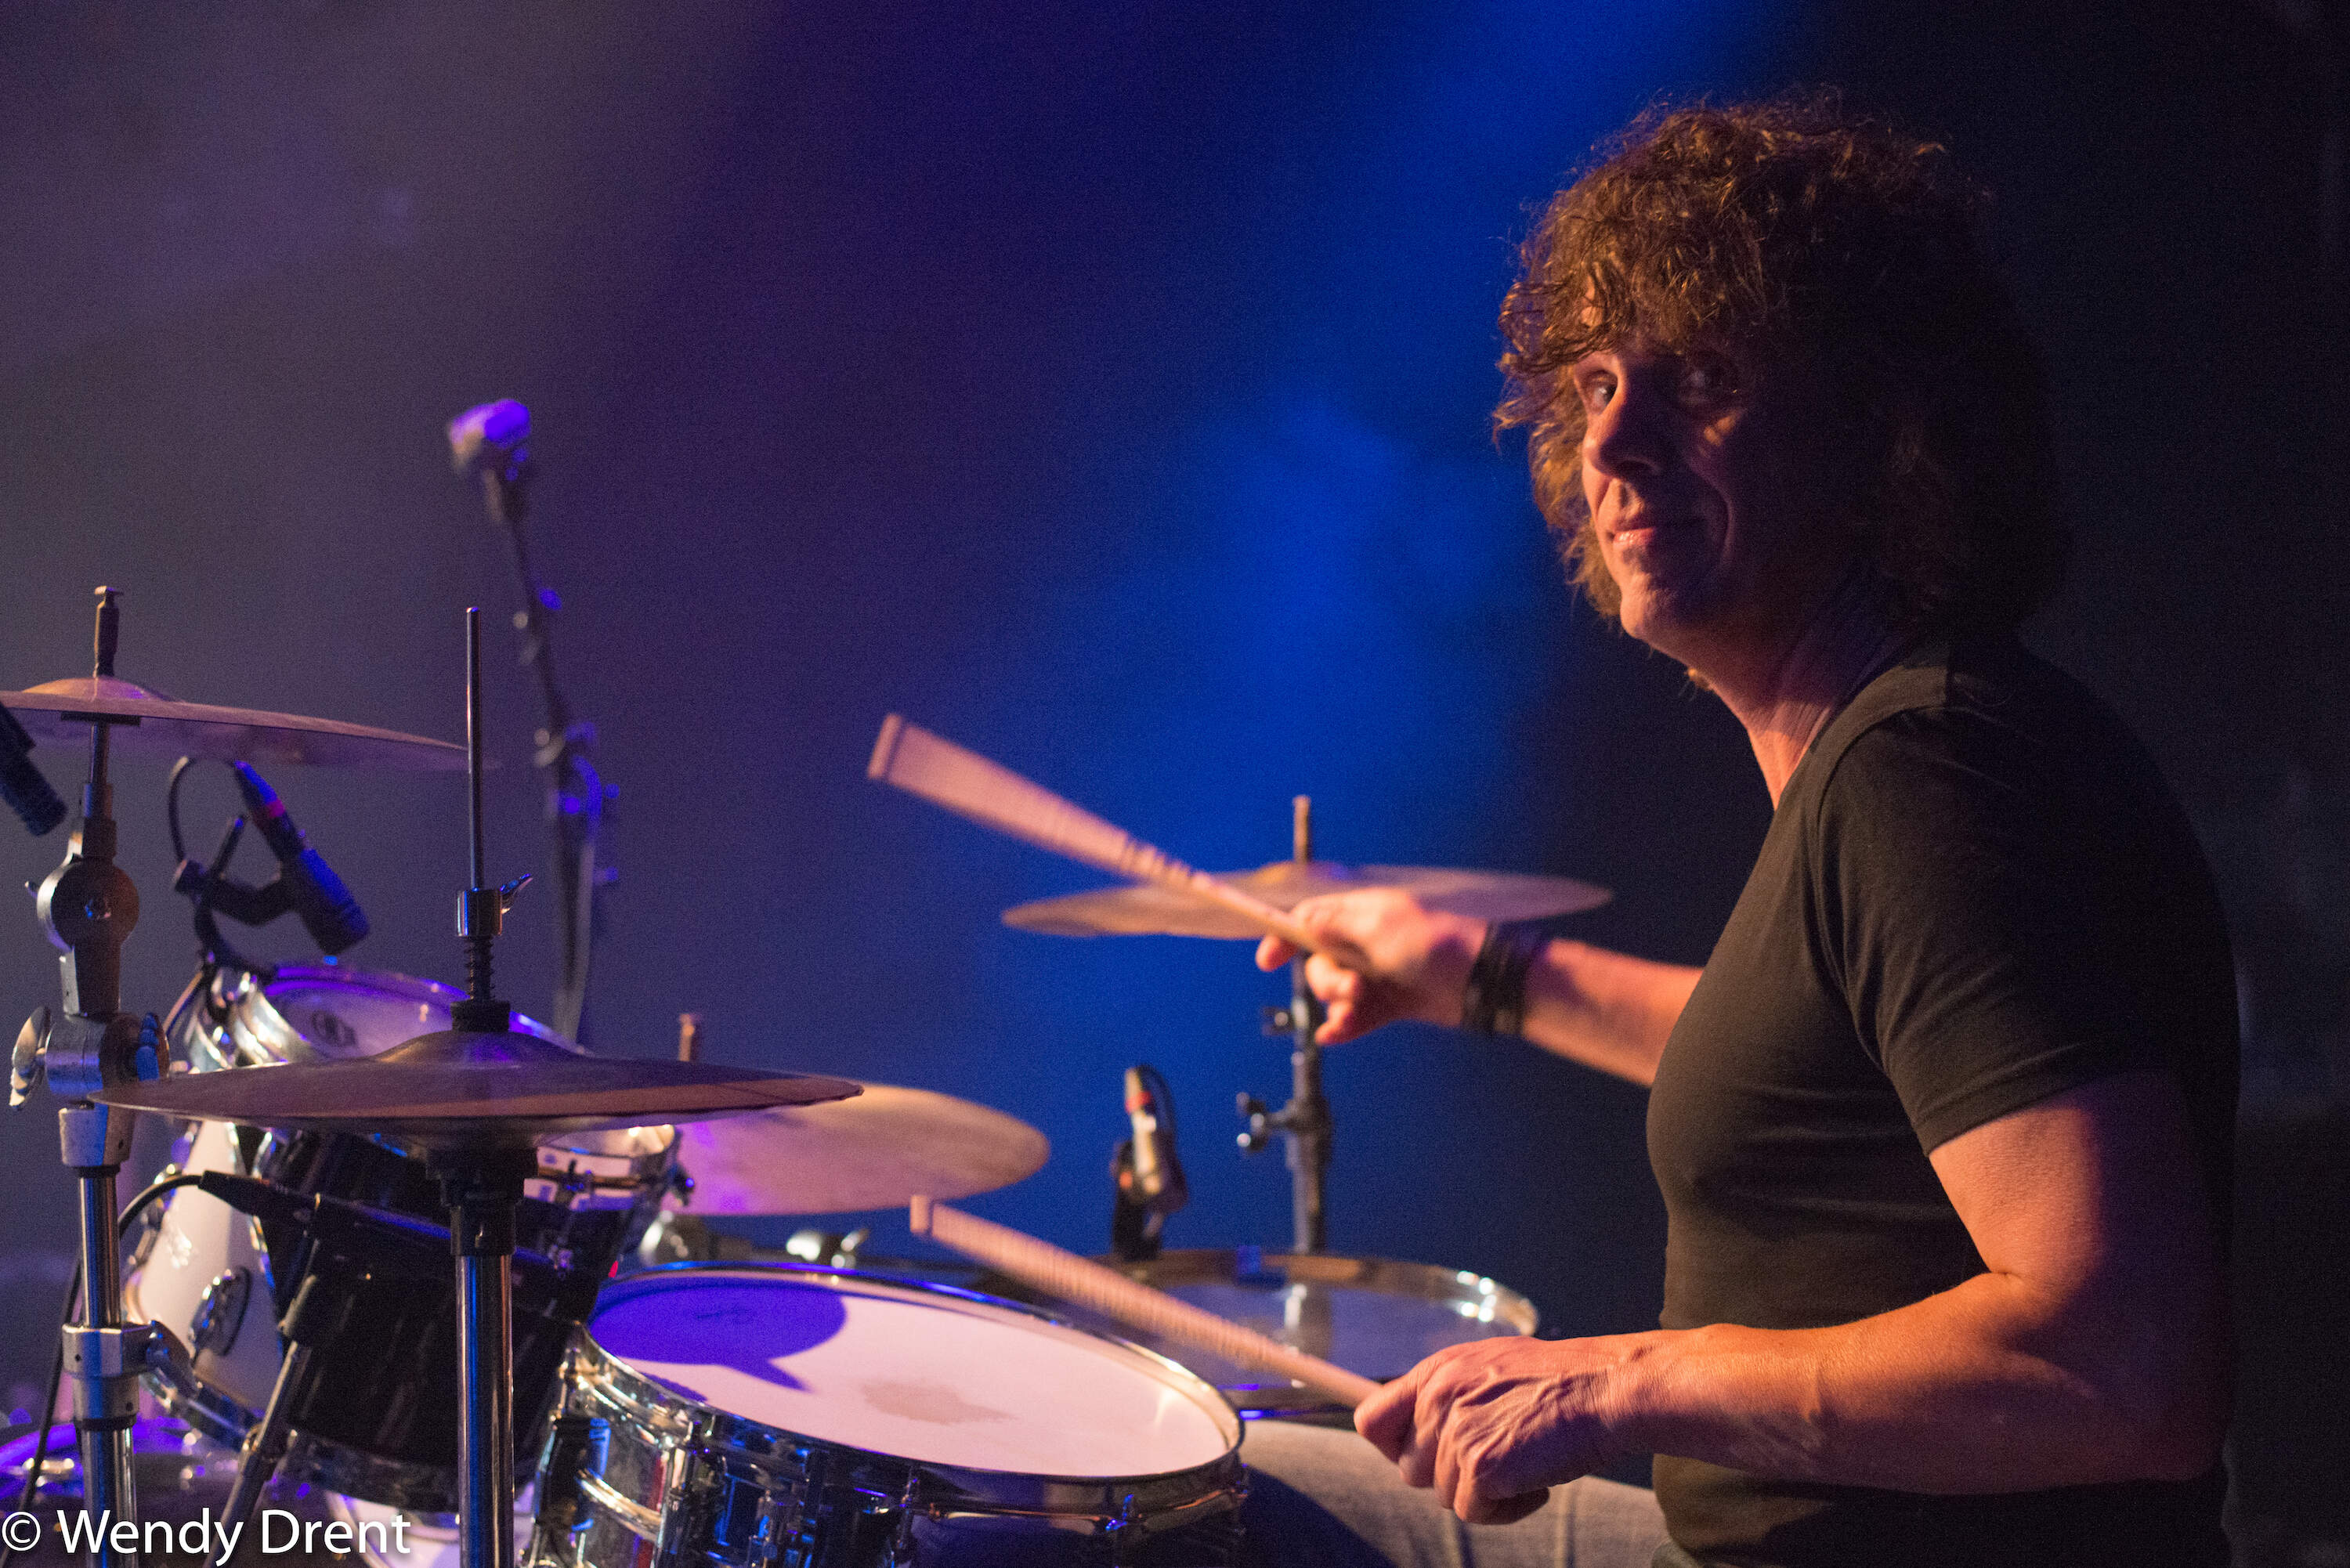 drummer, veldman brother, wendy drent, band, event, music, drum, event photography, haarlem, patronaat, live music